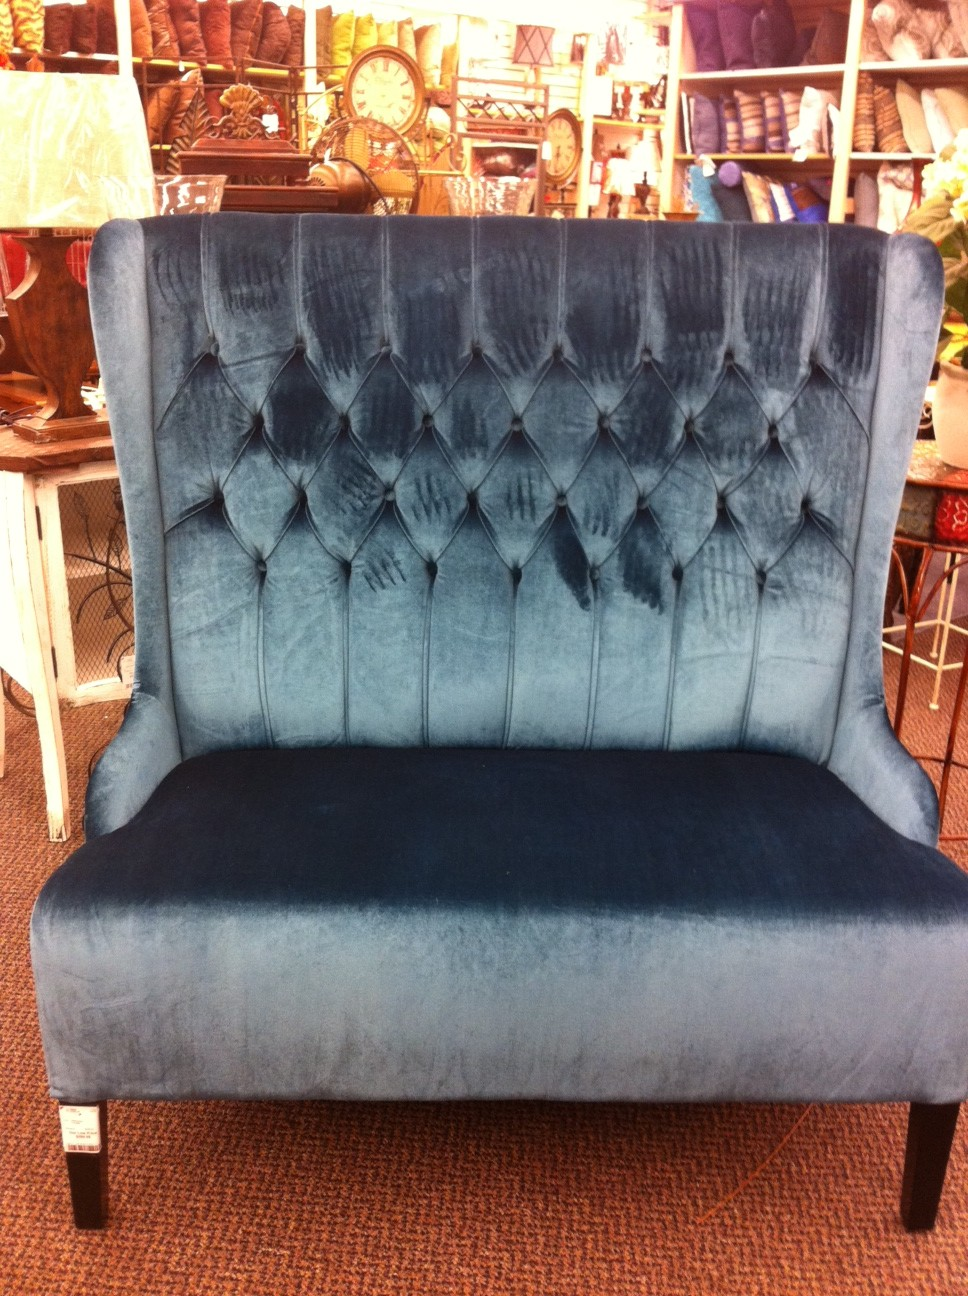 This Velvet Turquoise Settee Screams Cosmopolitan And Chic From Every  Angle. The Diamond Tufting On The High Back Gives This Settee ...